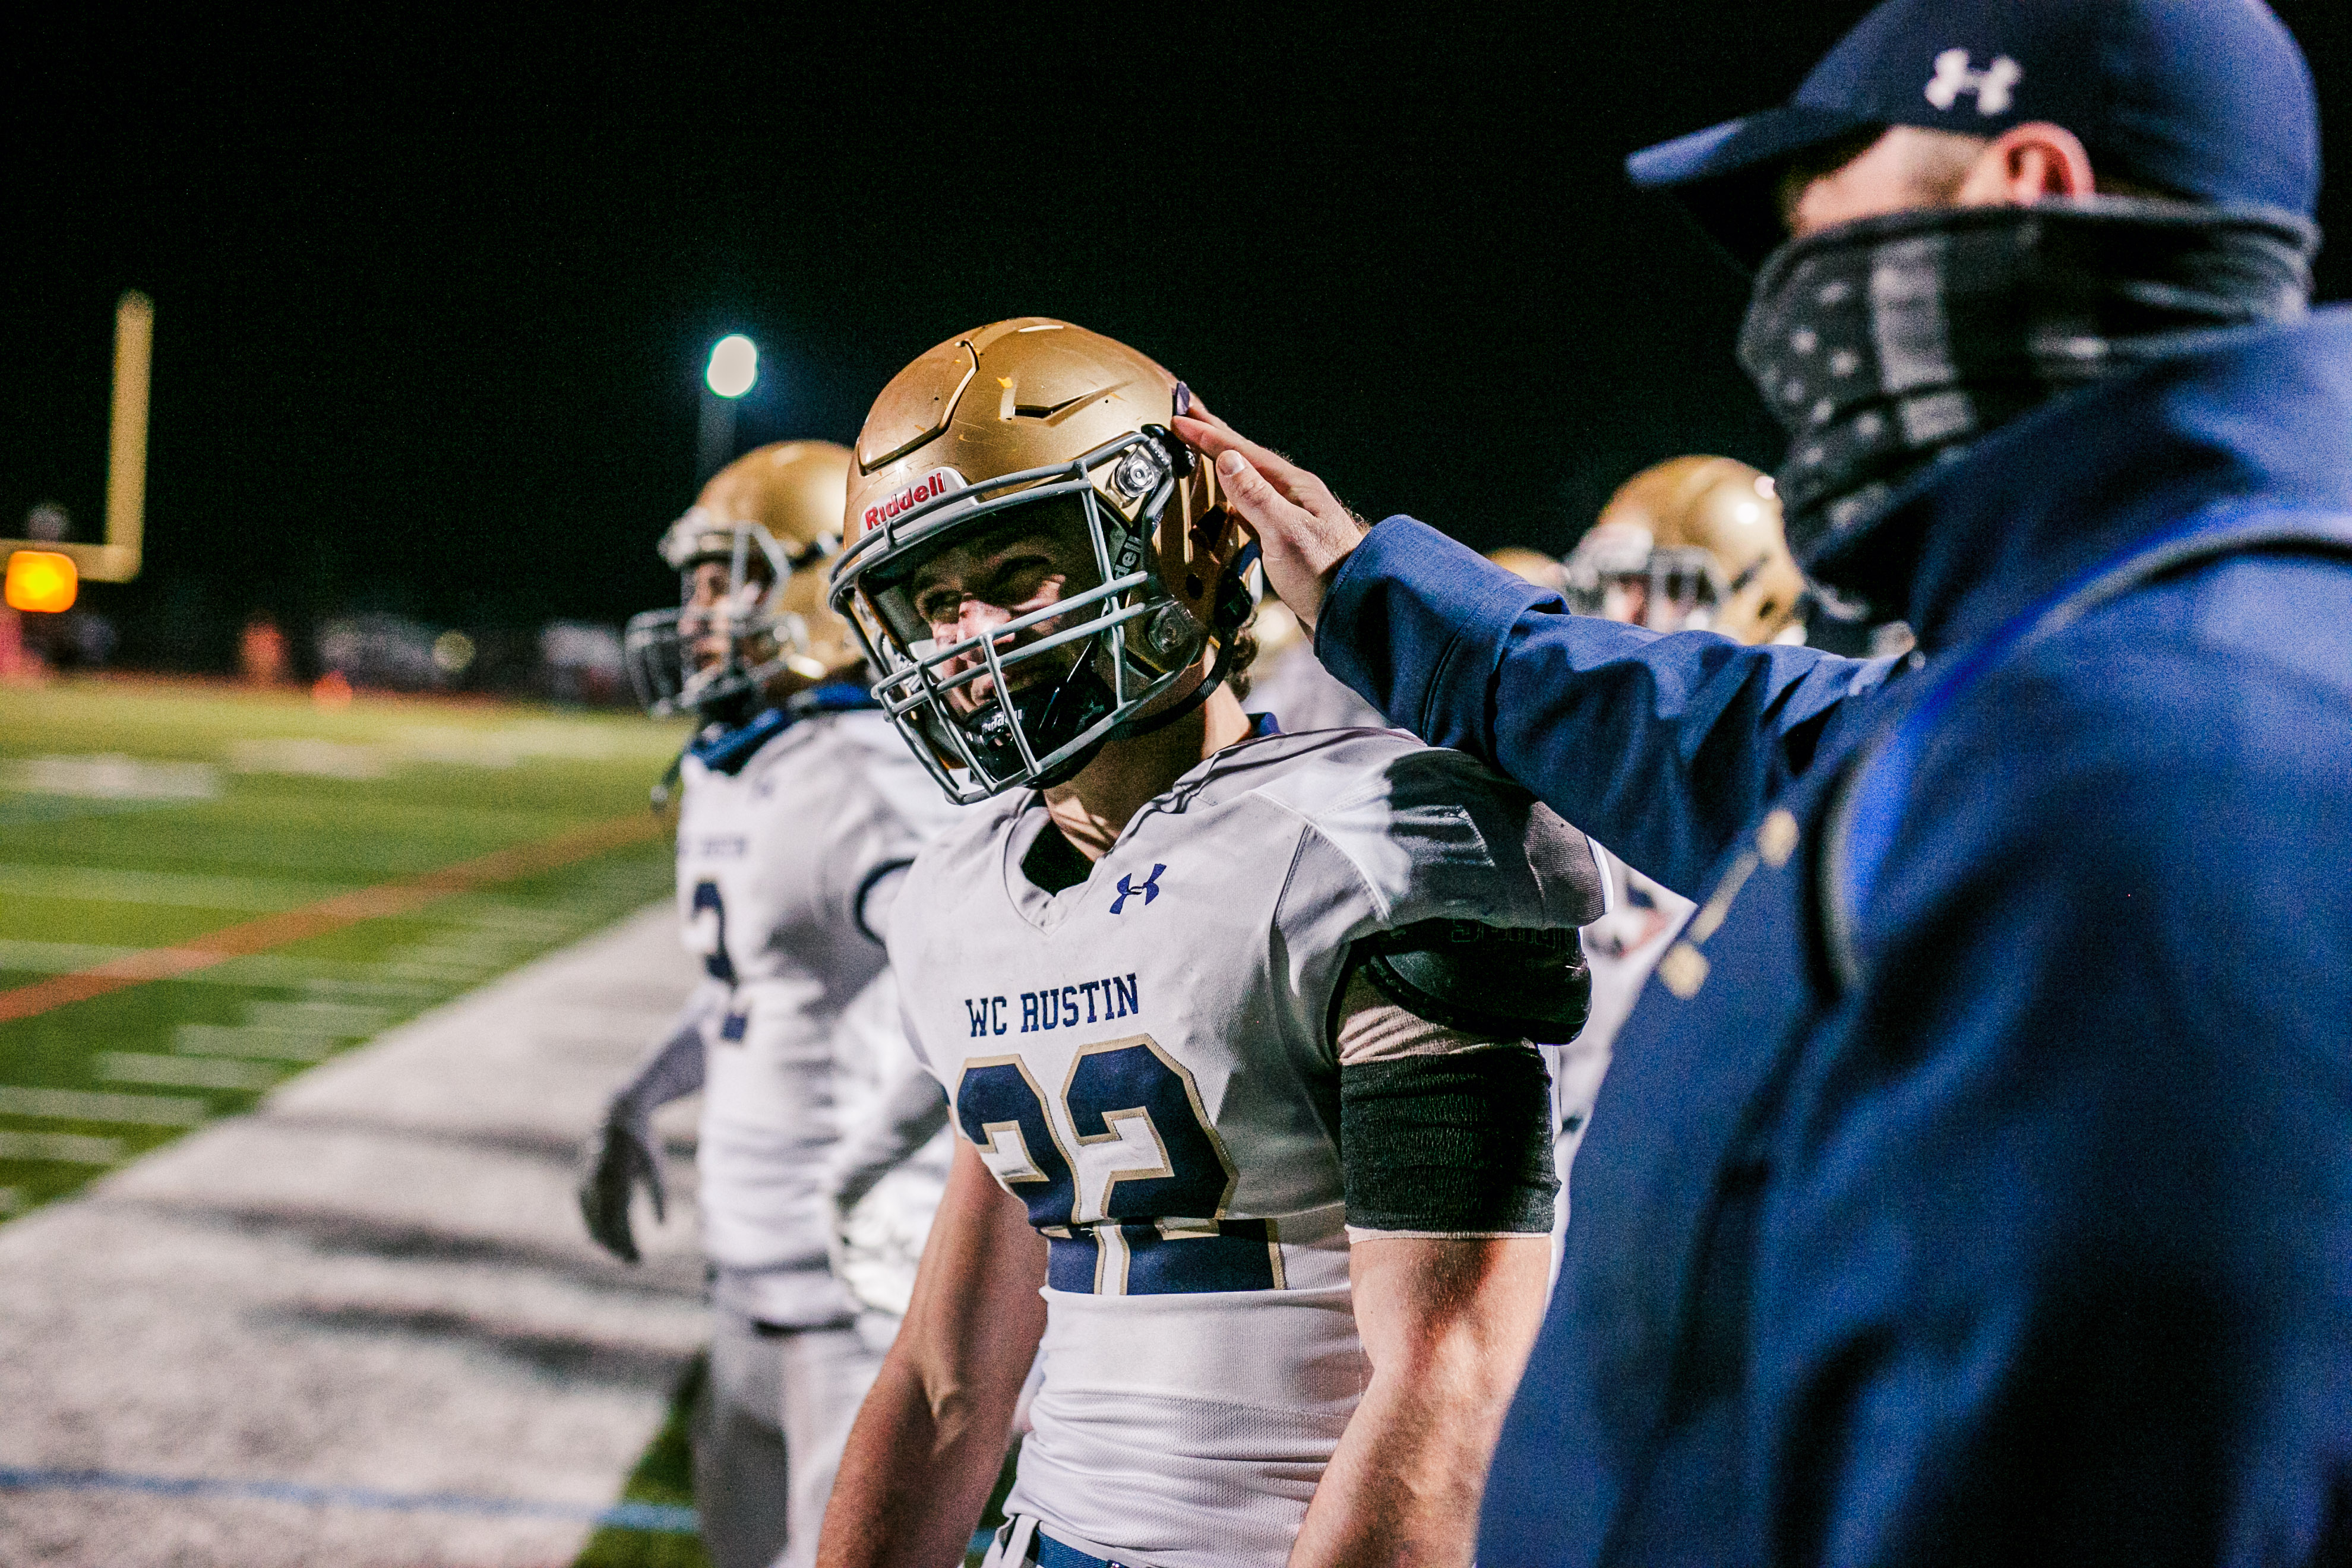 West Chester Rustin's Tucker Flynn gets a pat on the head from assistant coach, John Timko. (Nate Heckenberger - For MediaNews Group)